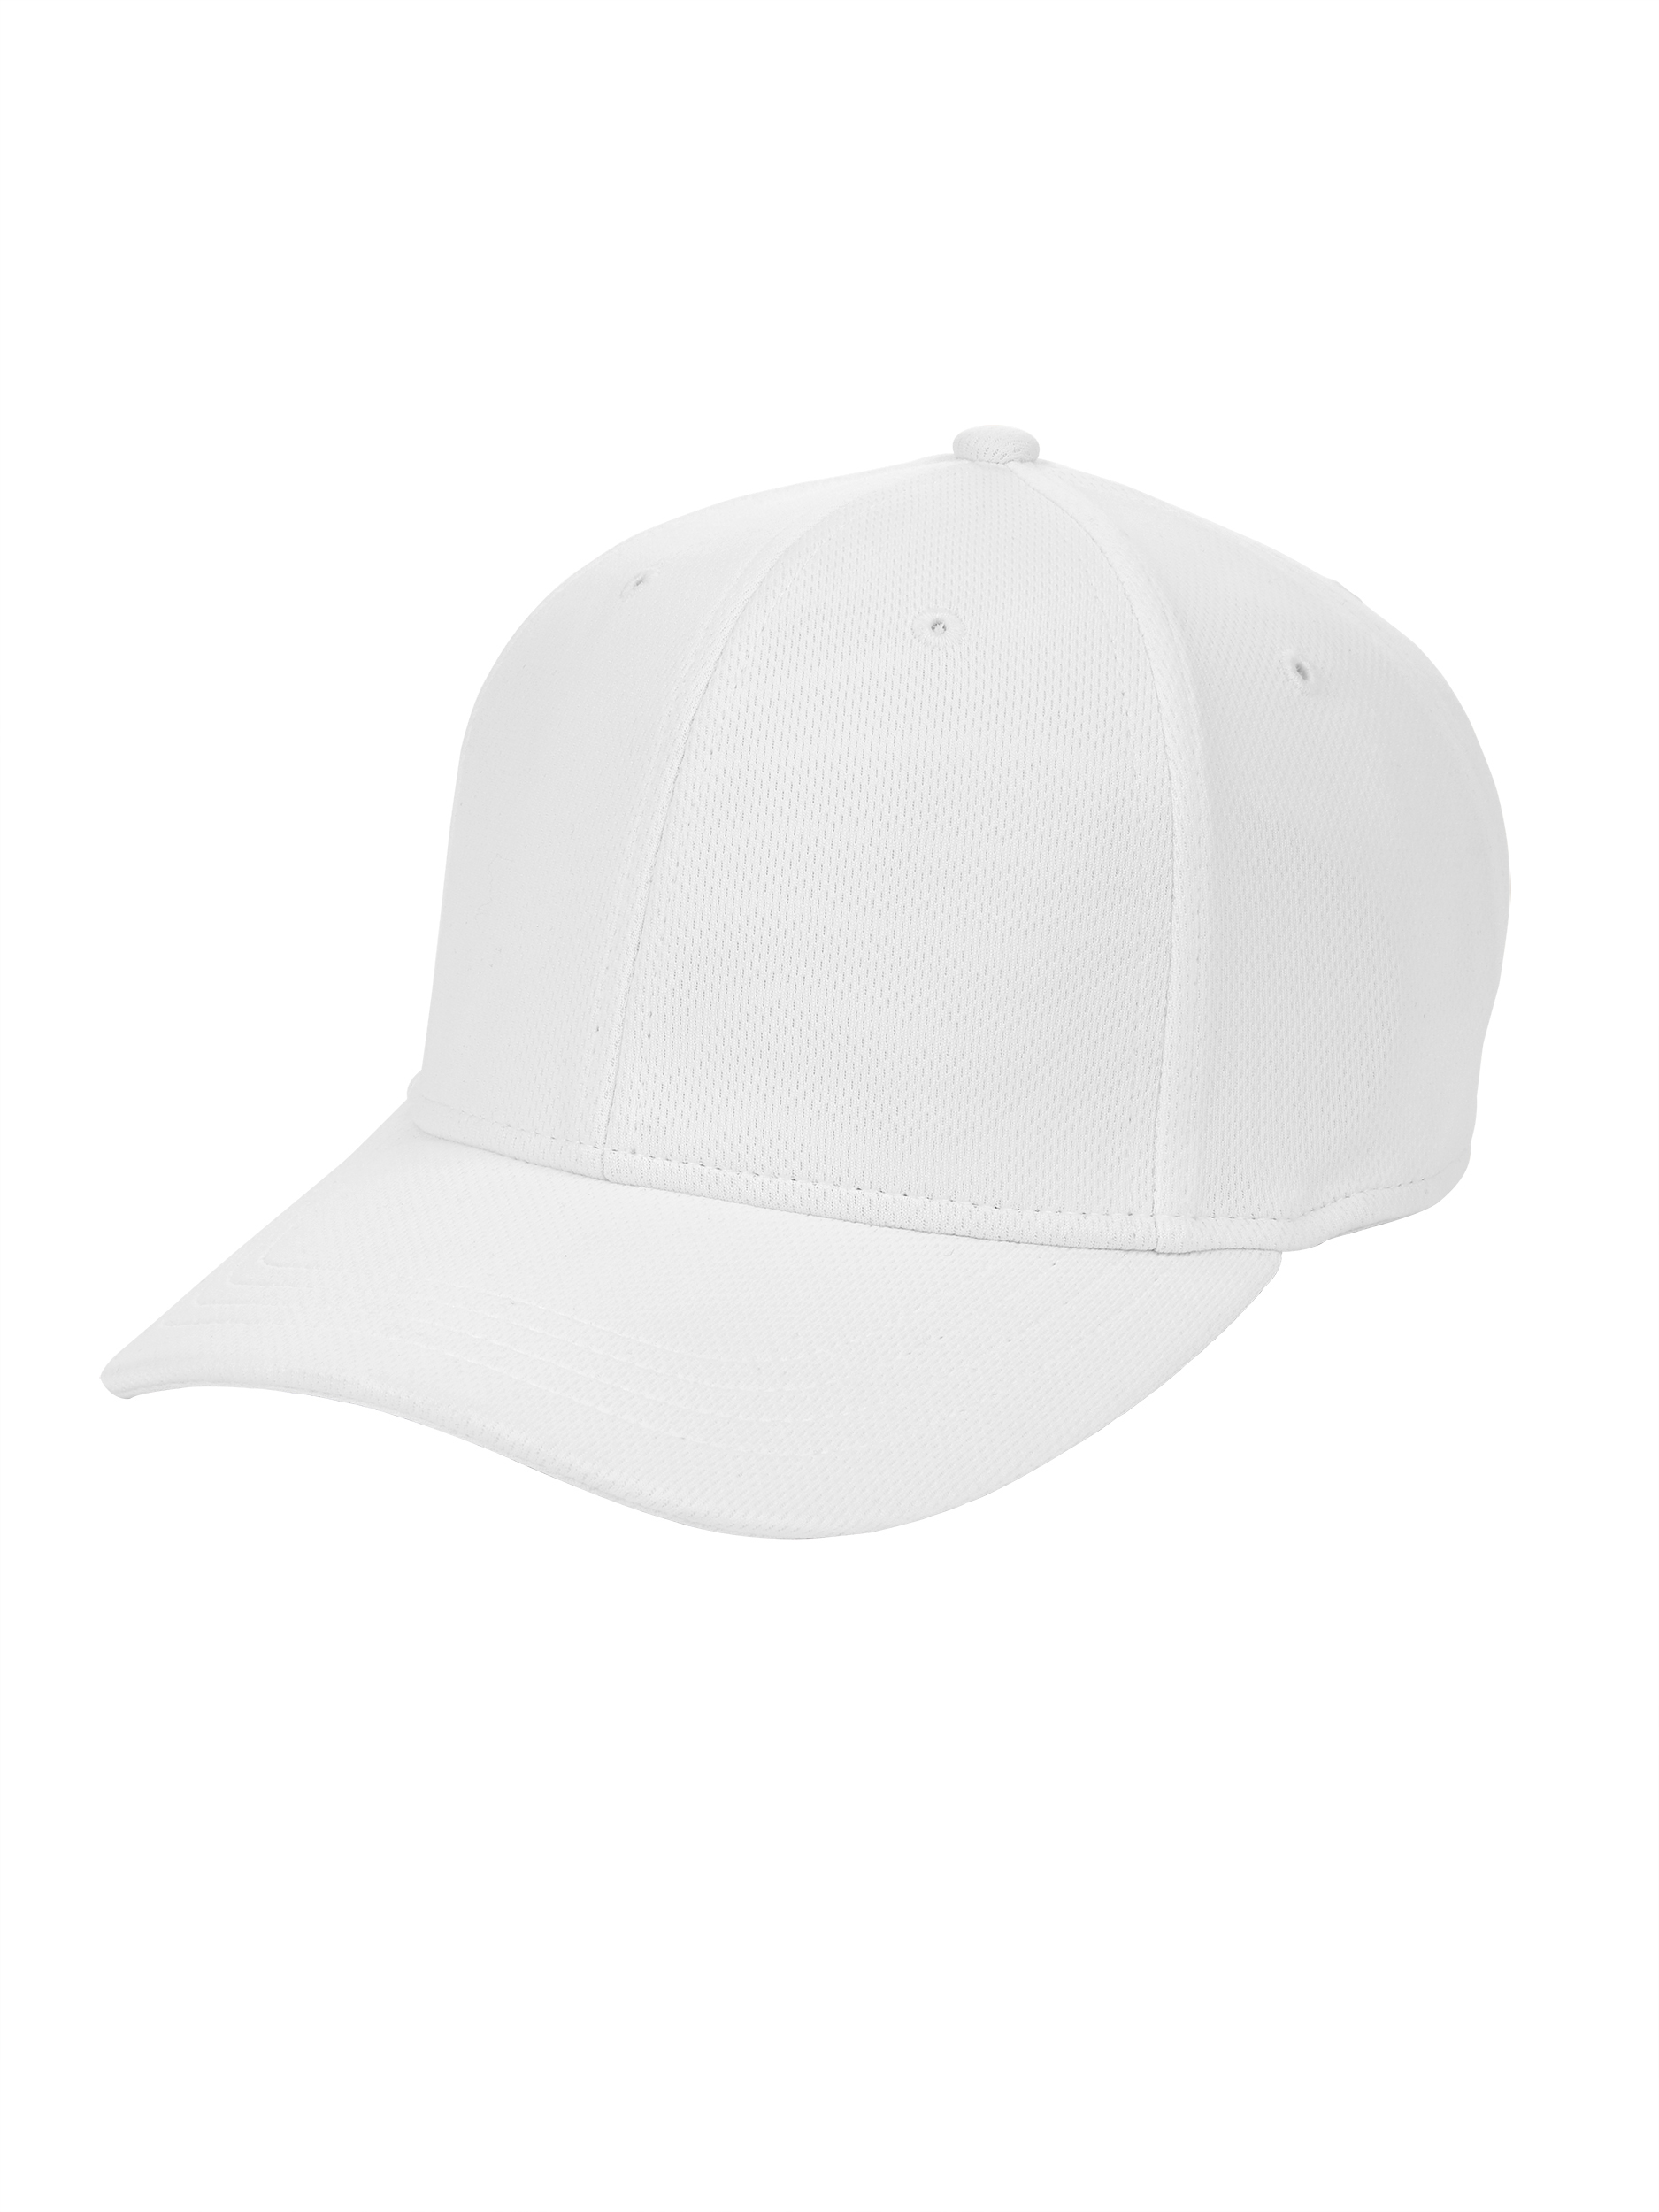 ac5df6f068 Athletic Works - Athletic Works Solid Baseball Cap - Walmart.com